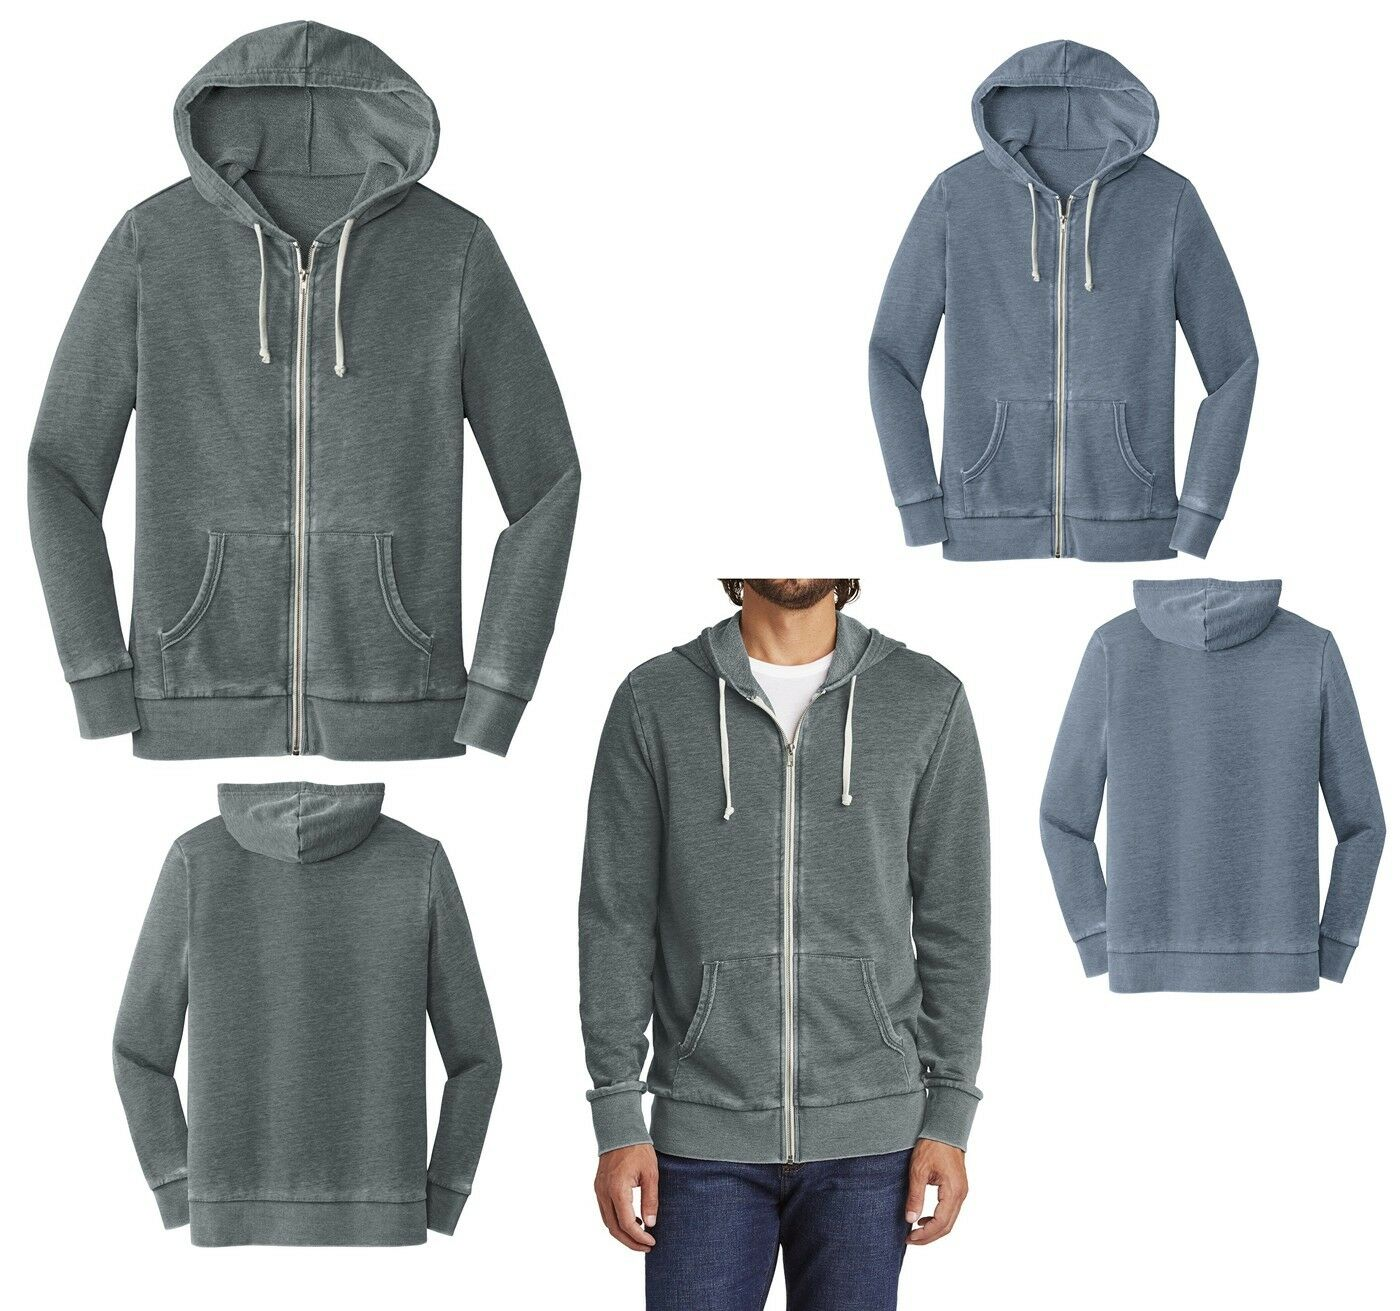 Herren FULL ZIP, SUPER SOFT, LIVED IN LOOK, BURNOUT HOODIE, DRAWCORD HOOD XS-3XL